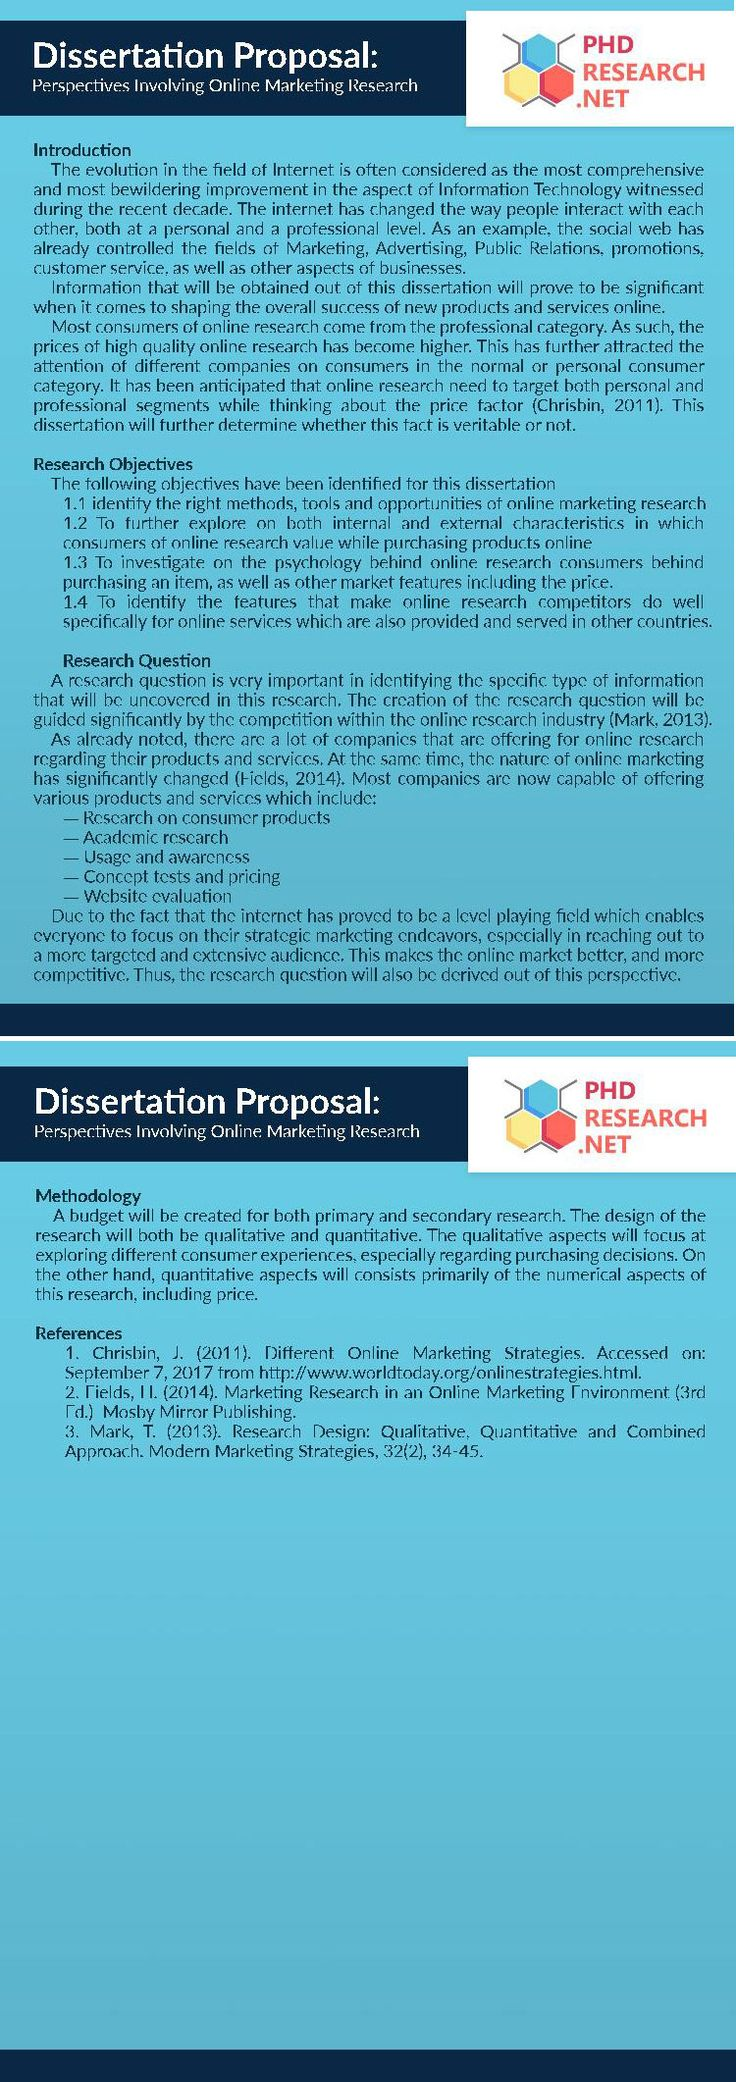 Check this PhD dissertation proposal sample and make sure